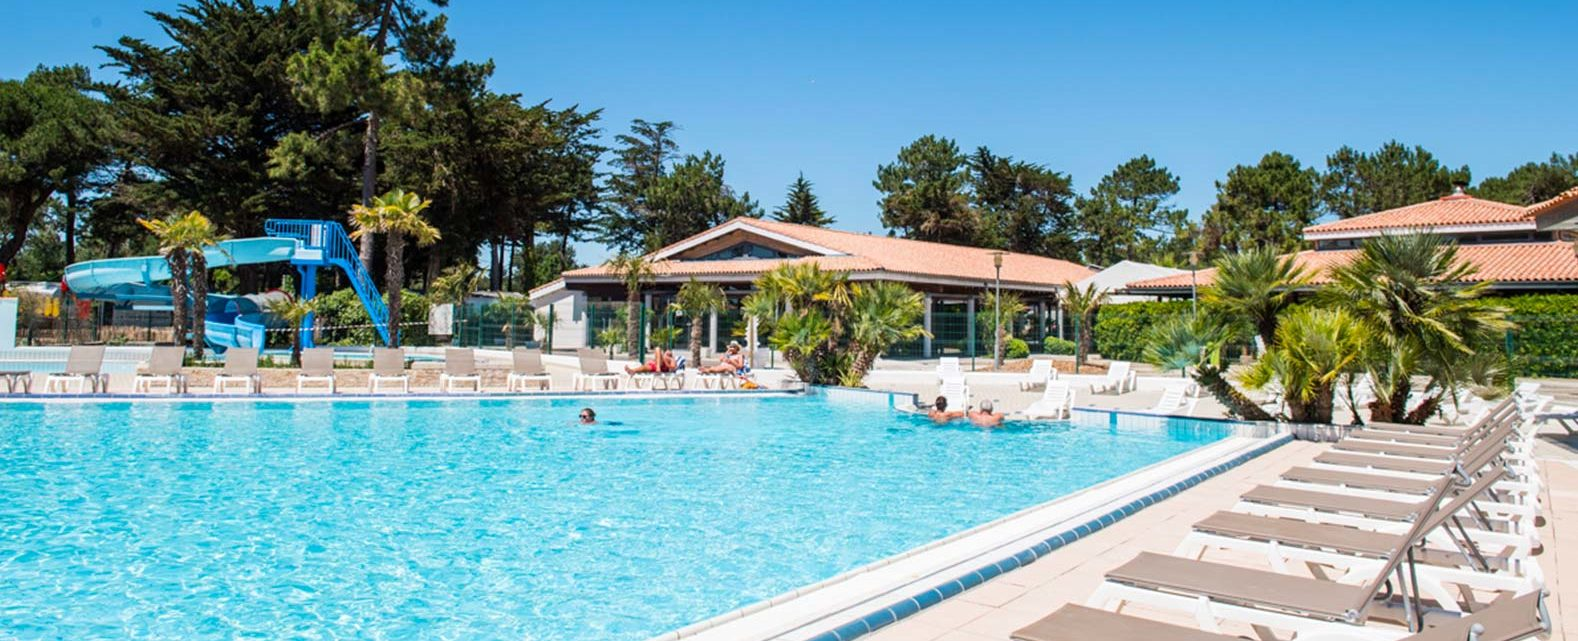 camping piscine grenettes seagreen